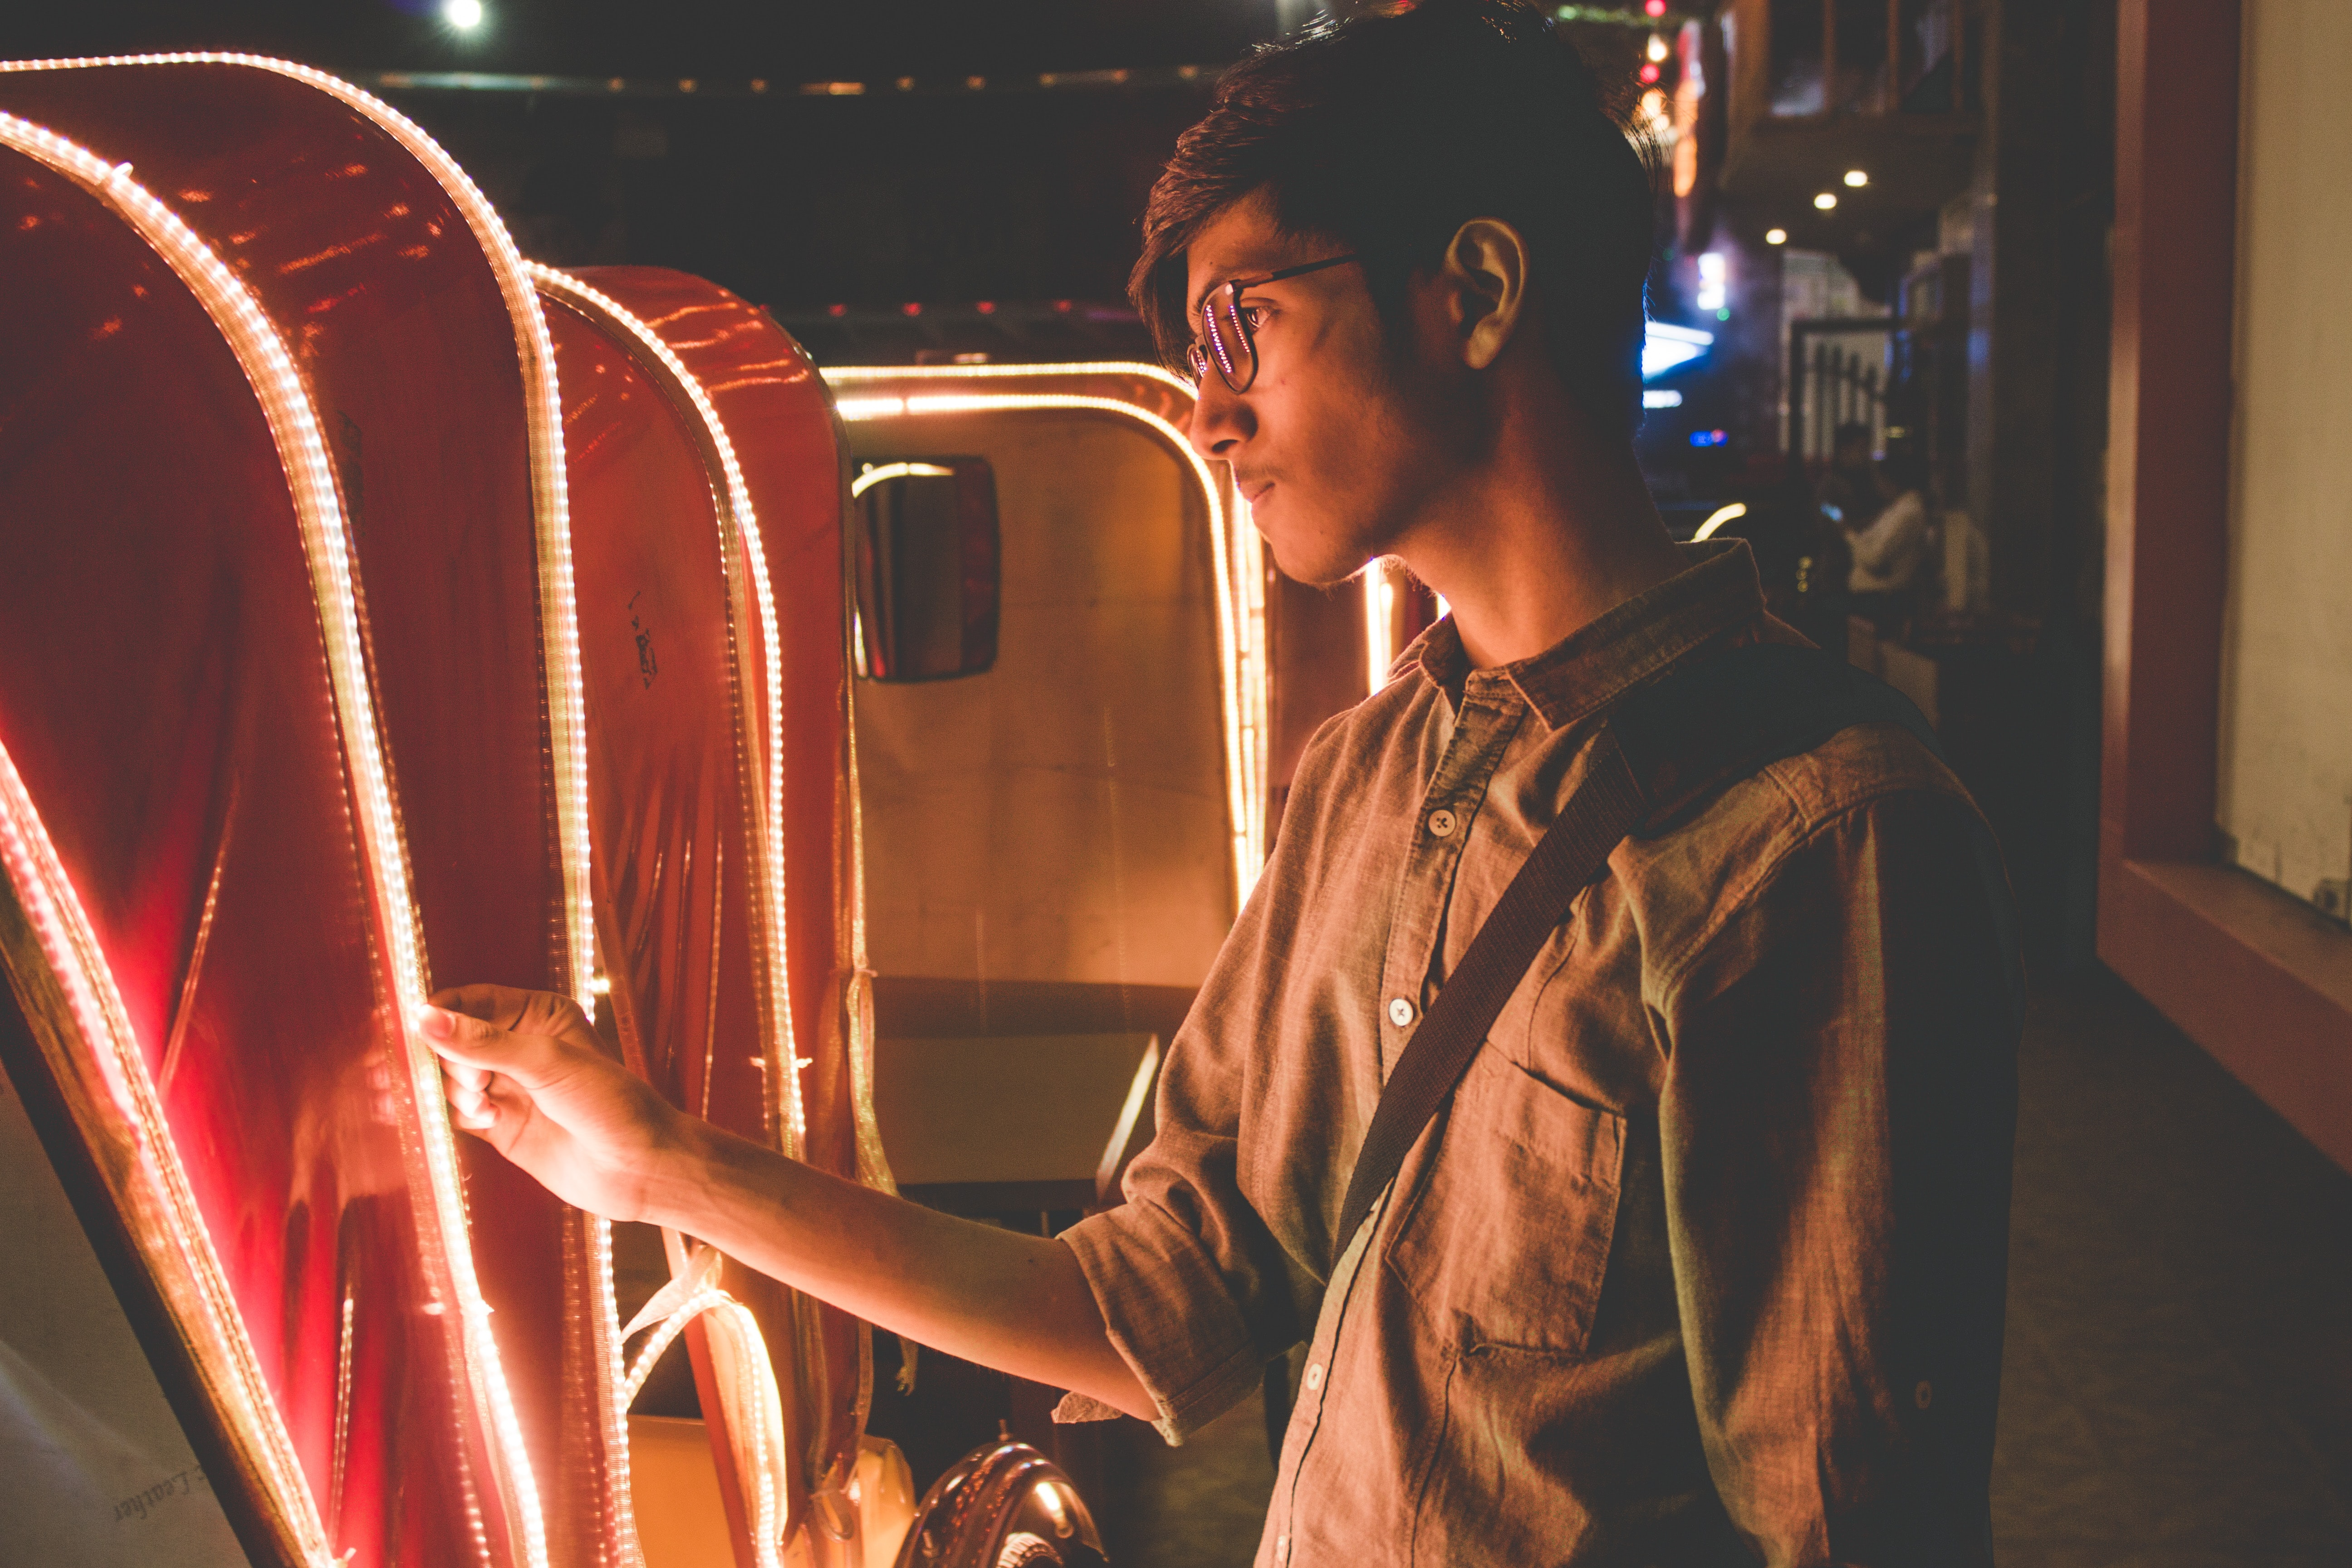 Young hipster man looks at the lights lining a carriage on a dark city street